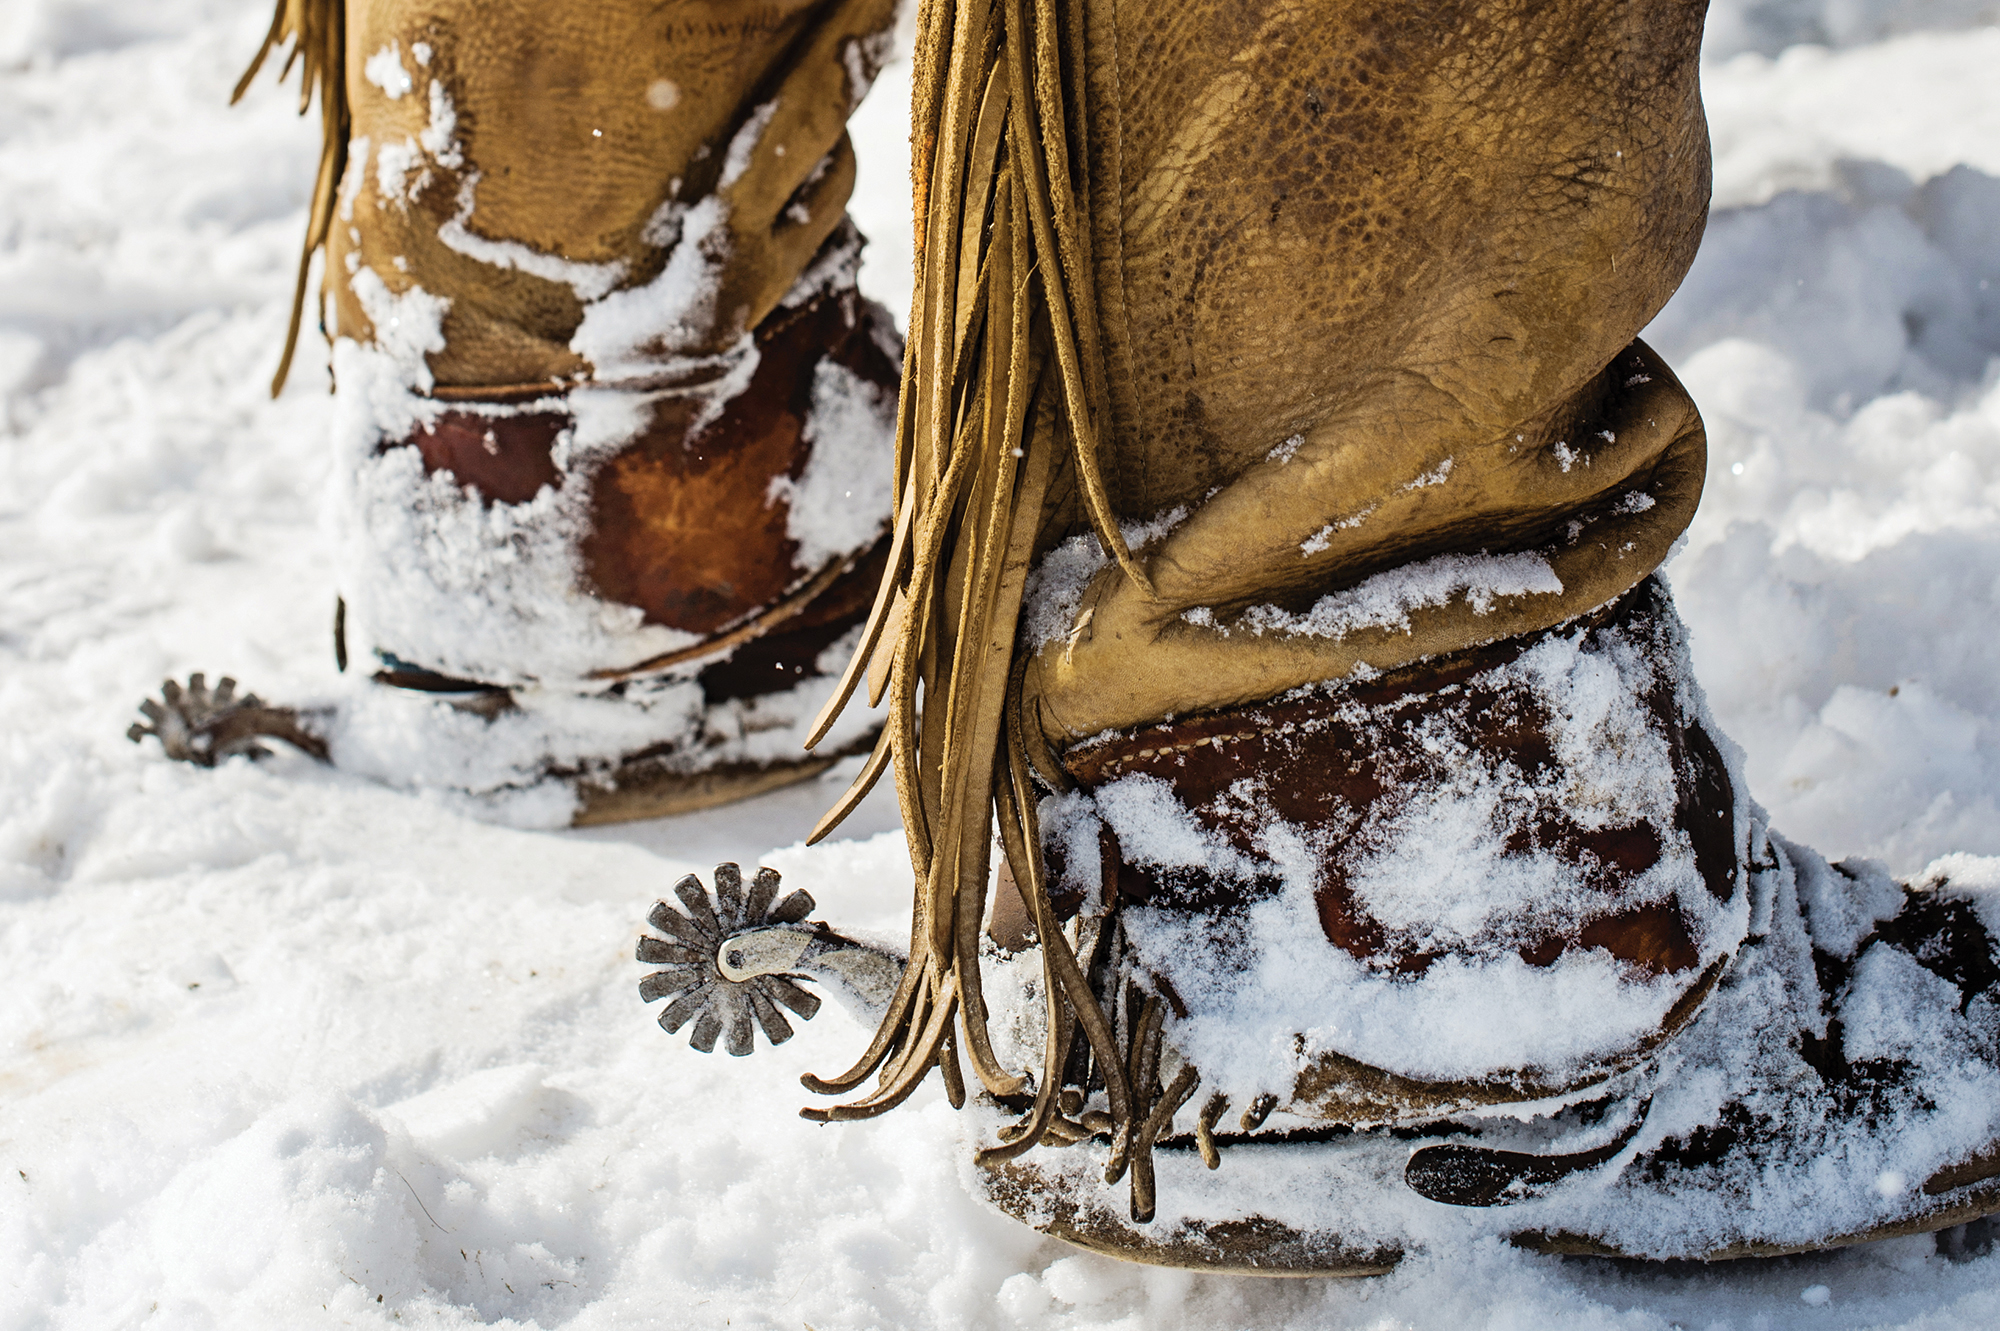 Close up of boots with spurs in the snow